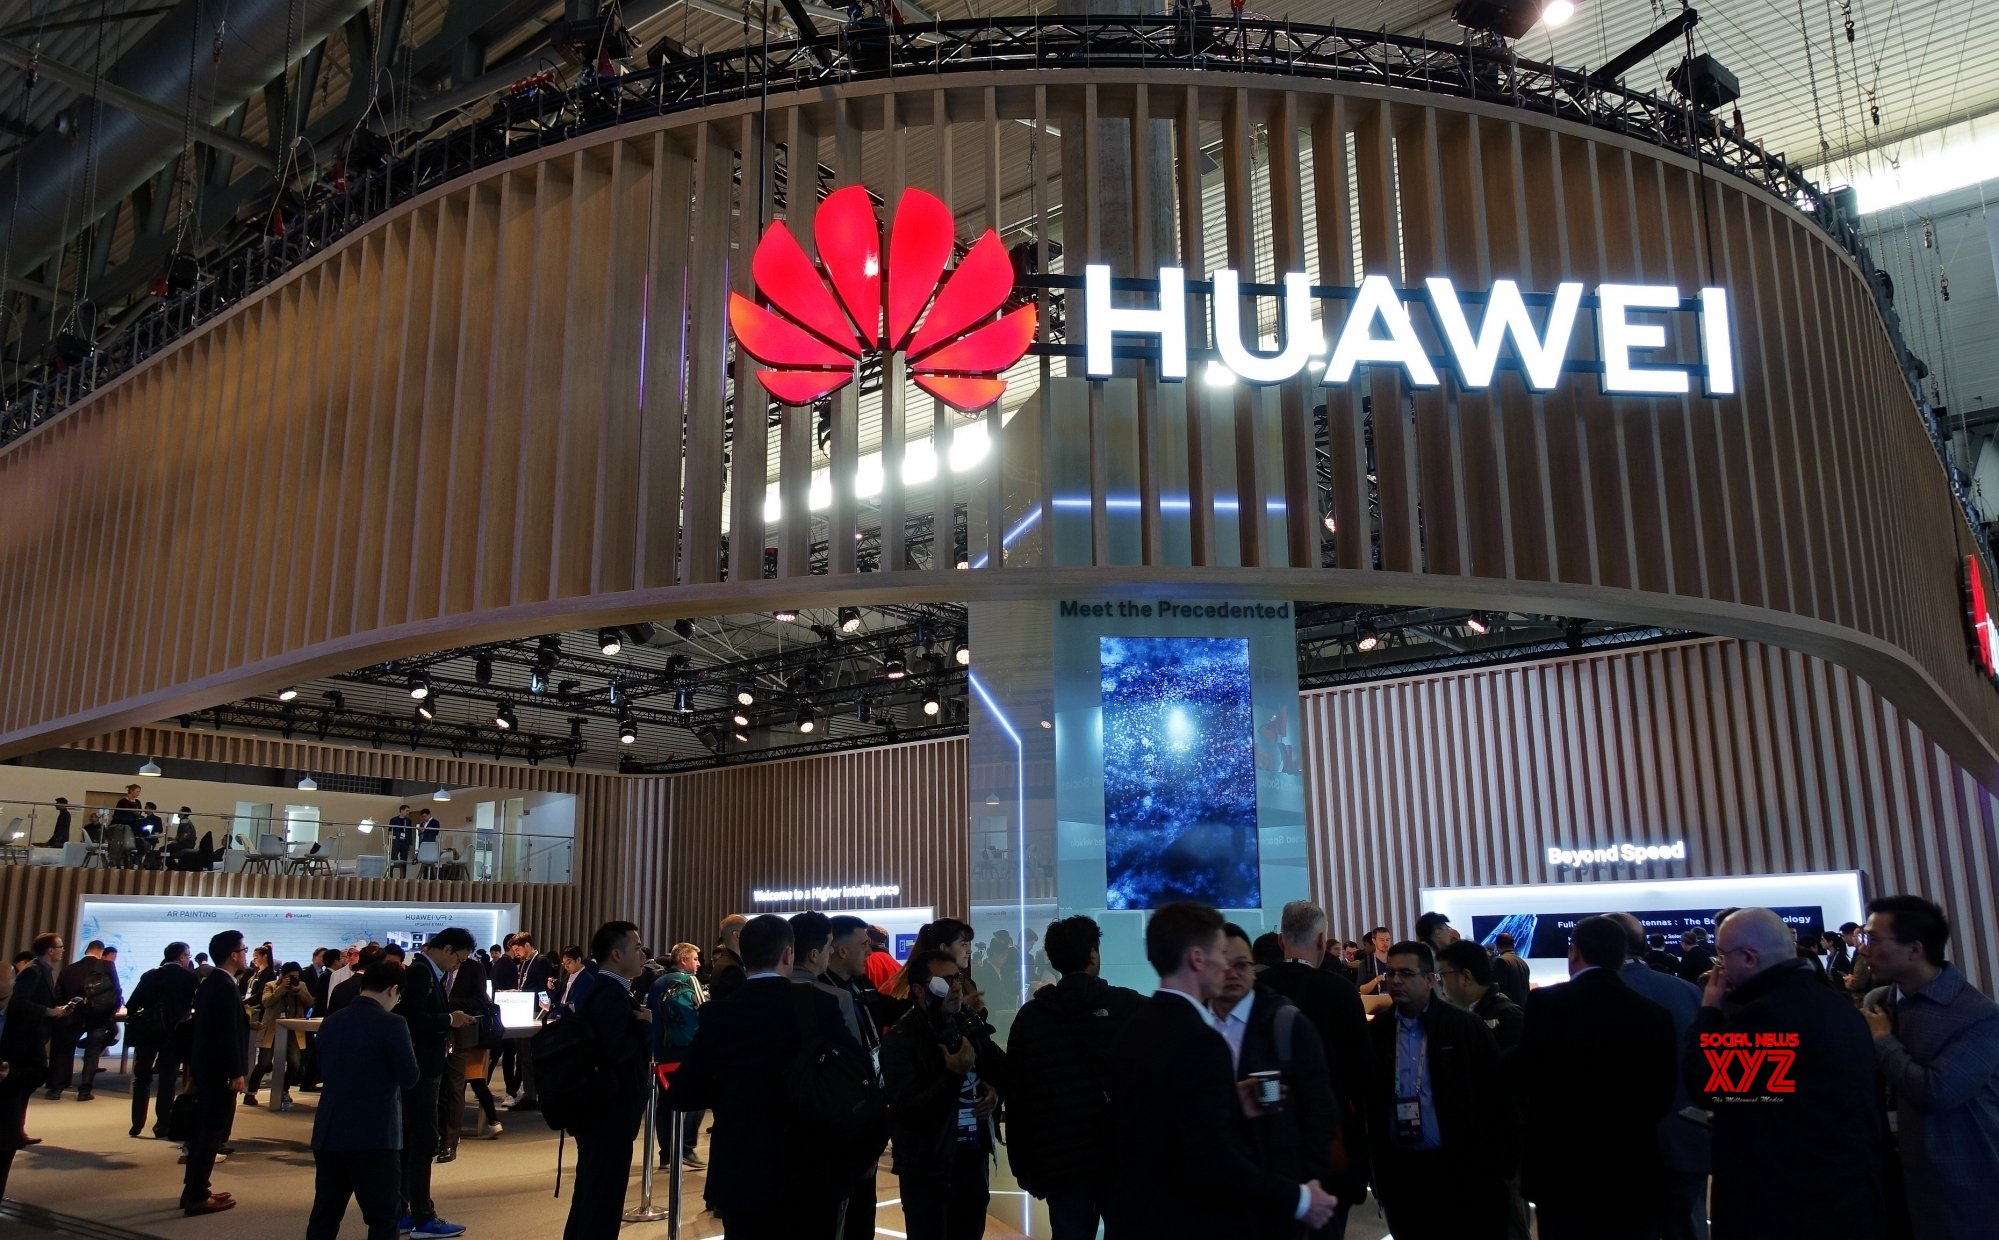 Open to addressing US security concerns: Huawei